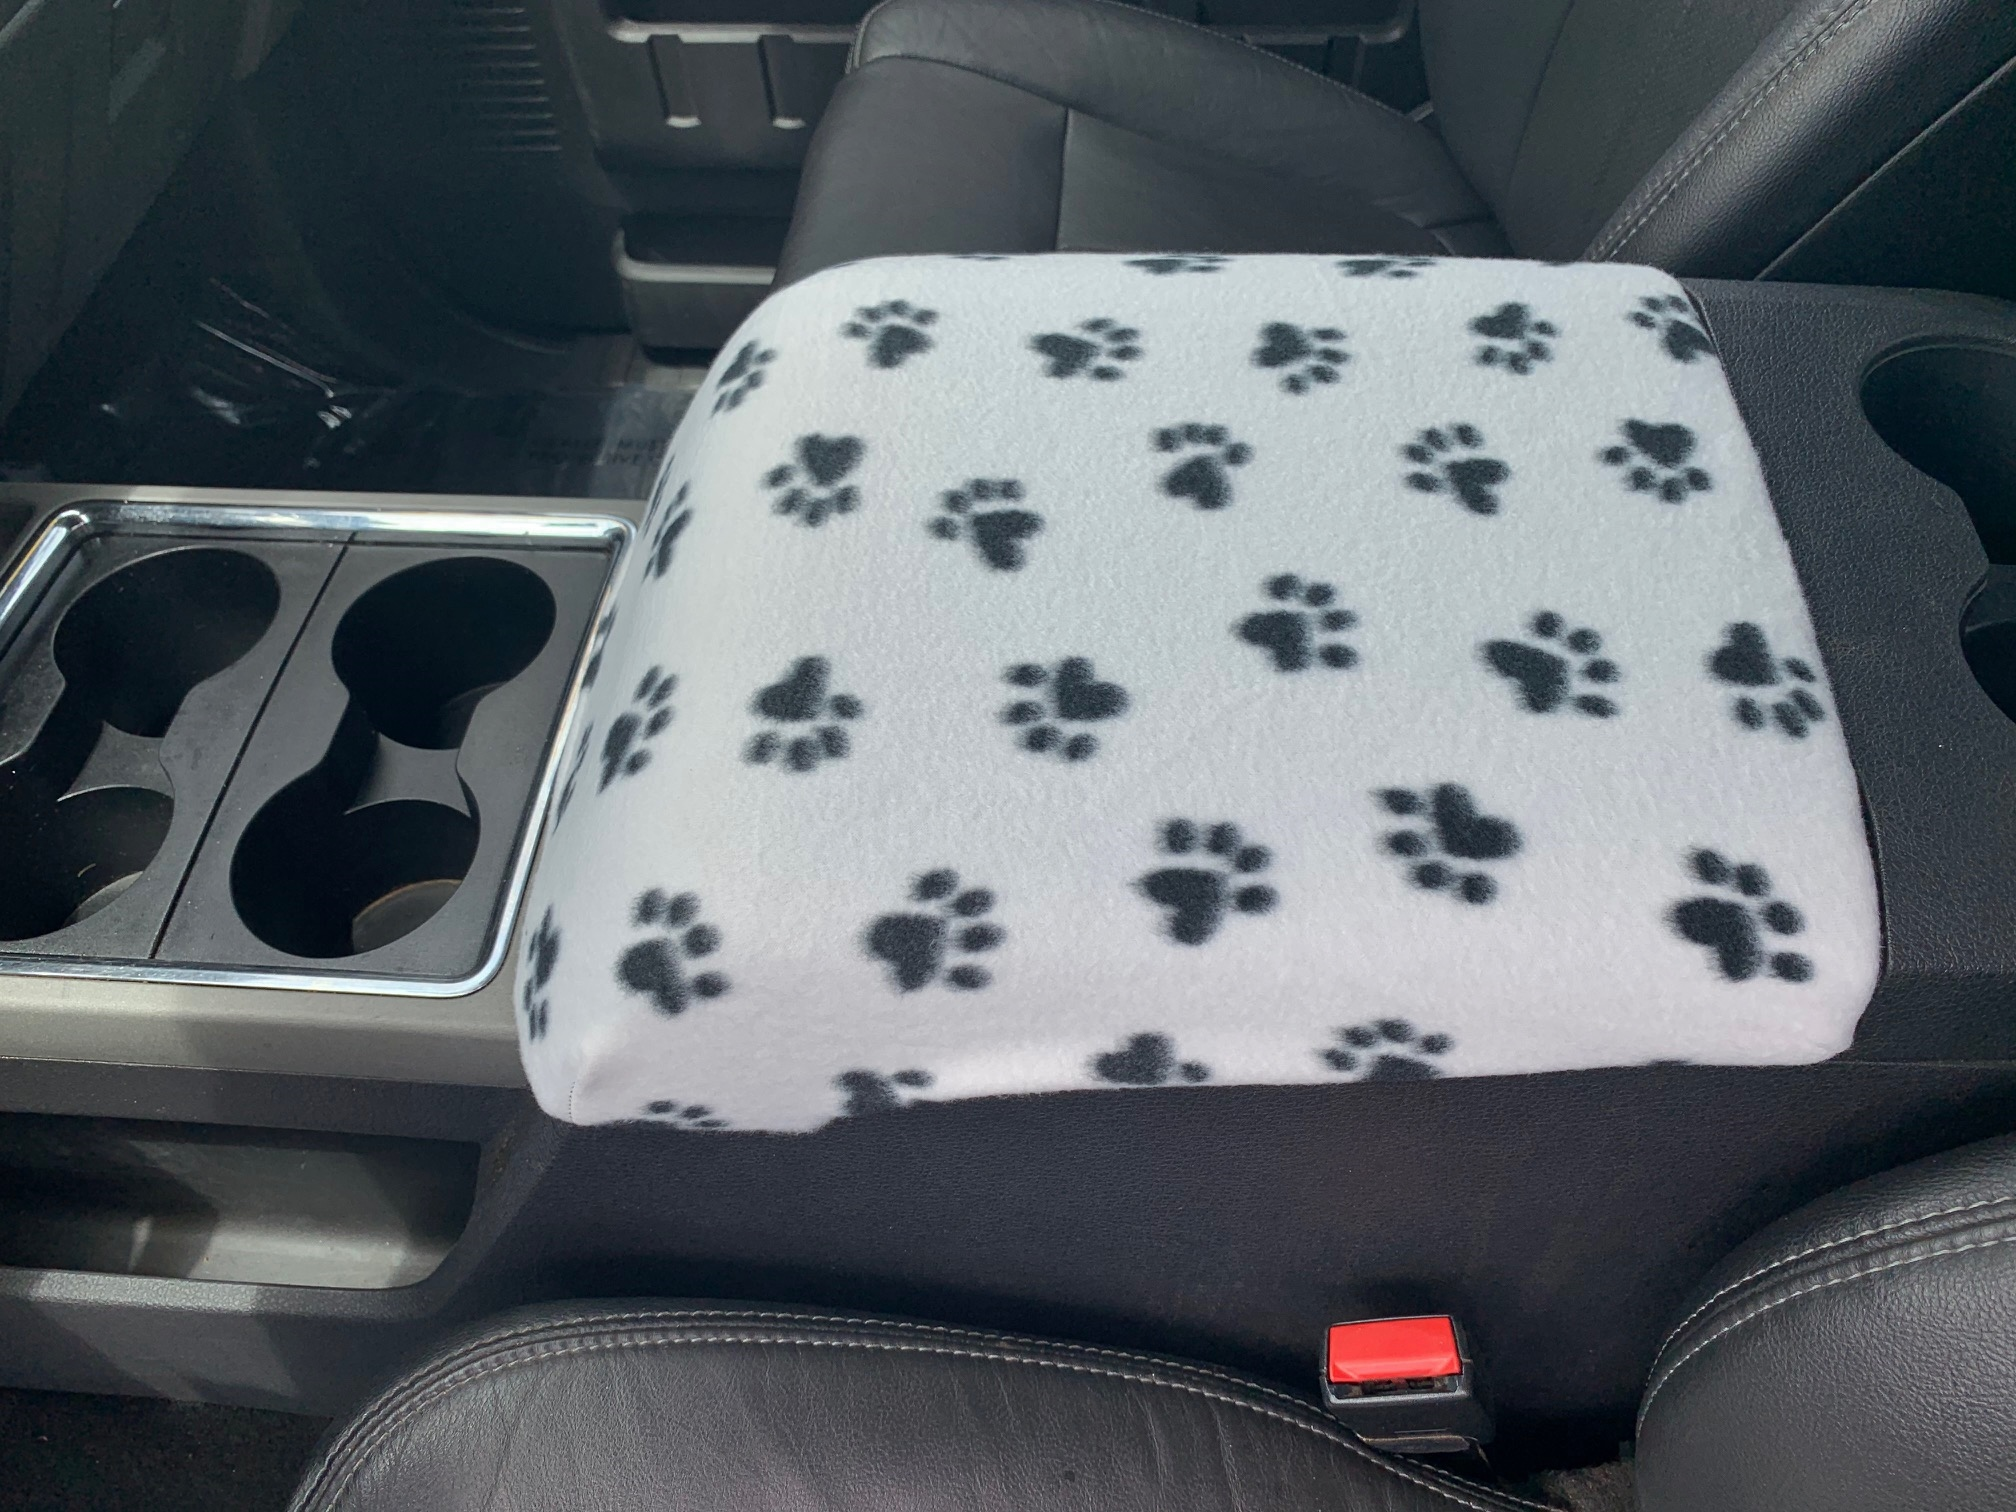 Buy Fleece Center Console Armrest Cover fits the Ford F-450 Super Duty 2011-2016 [CLONE]